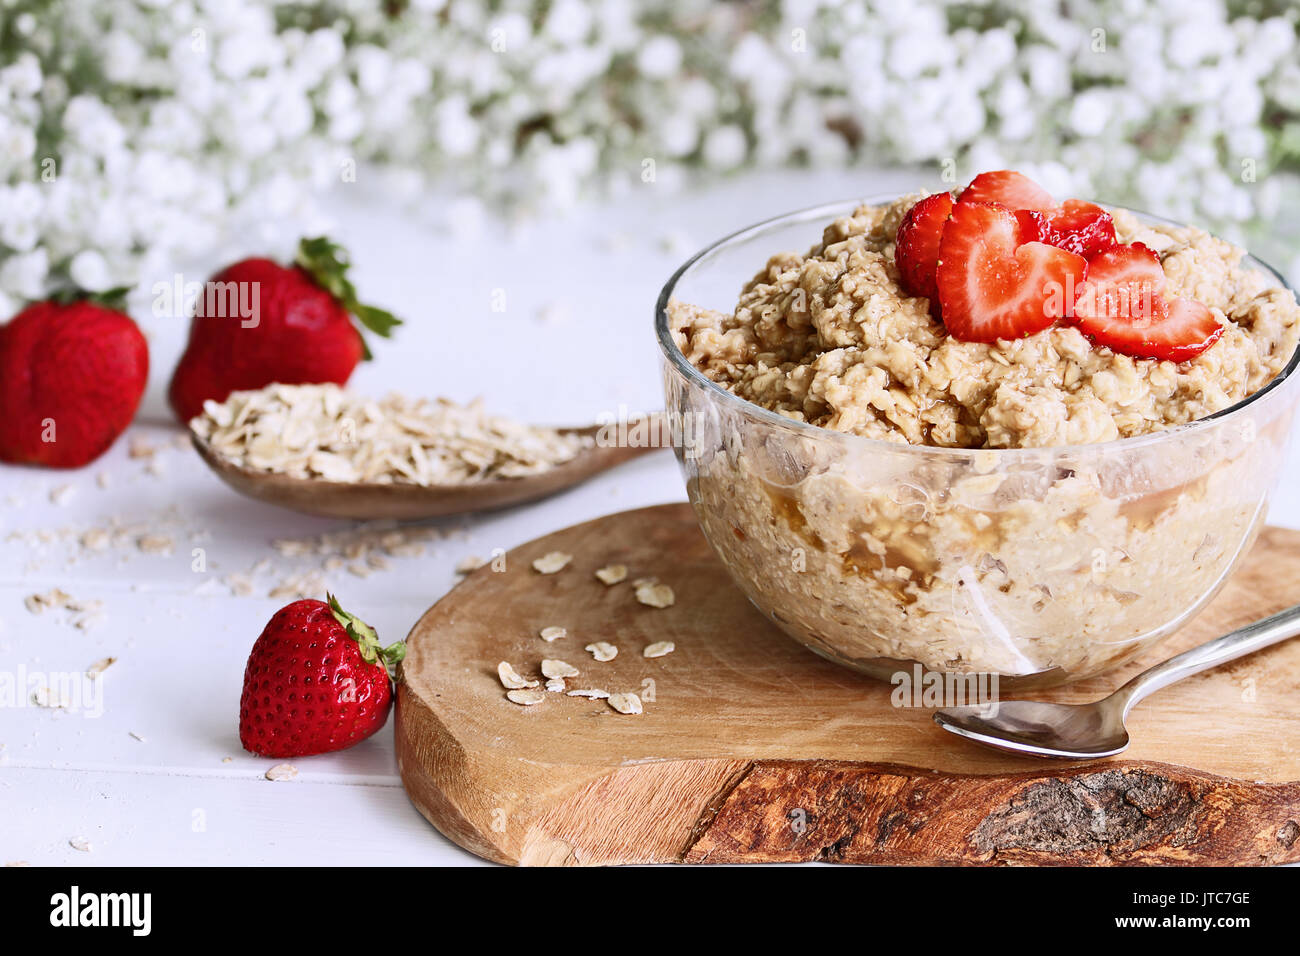 Hot breakfast of healthy oatmeal and heart shaped strawberries. Selective focus with extreme shallow depth of field. - Stock Image